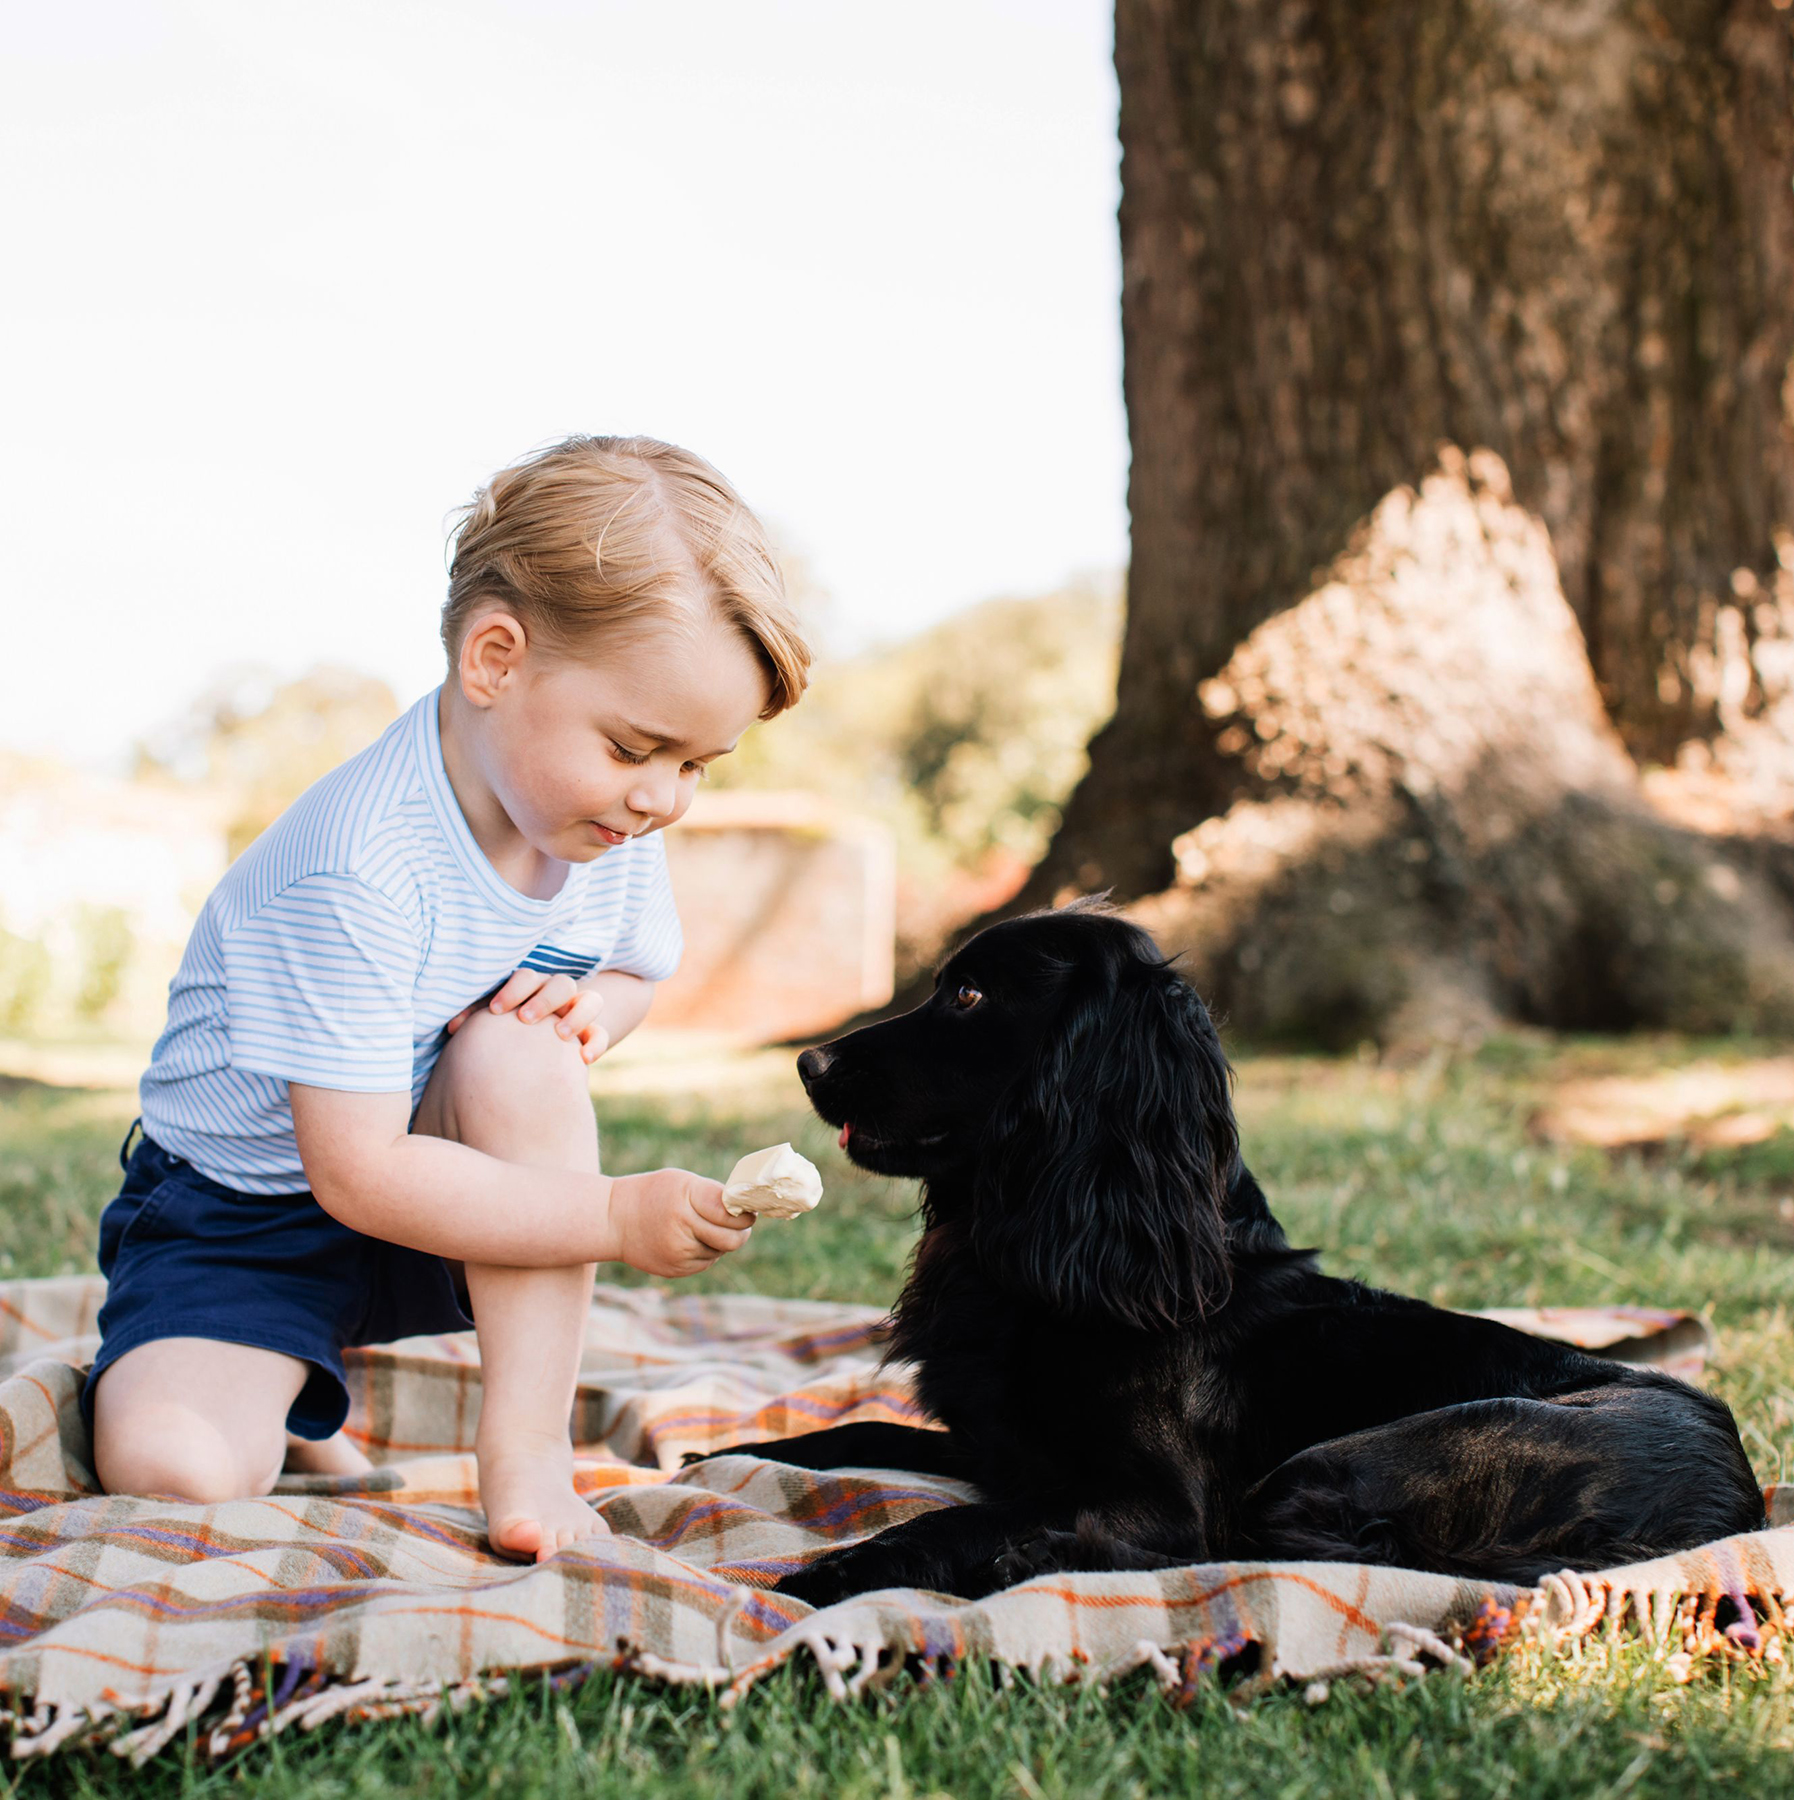 Prince George feeding dog ice cream